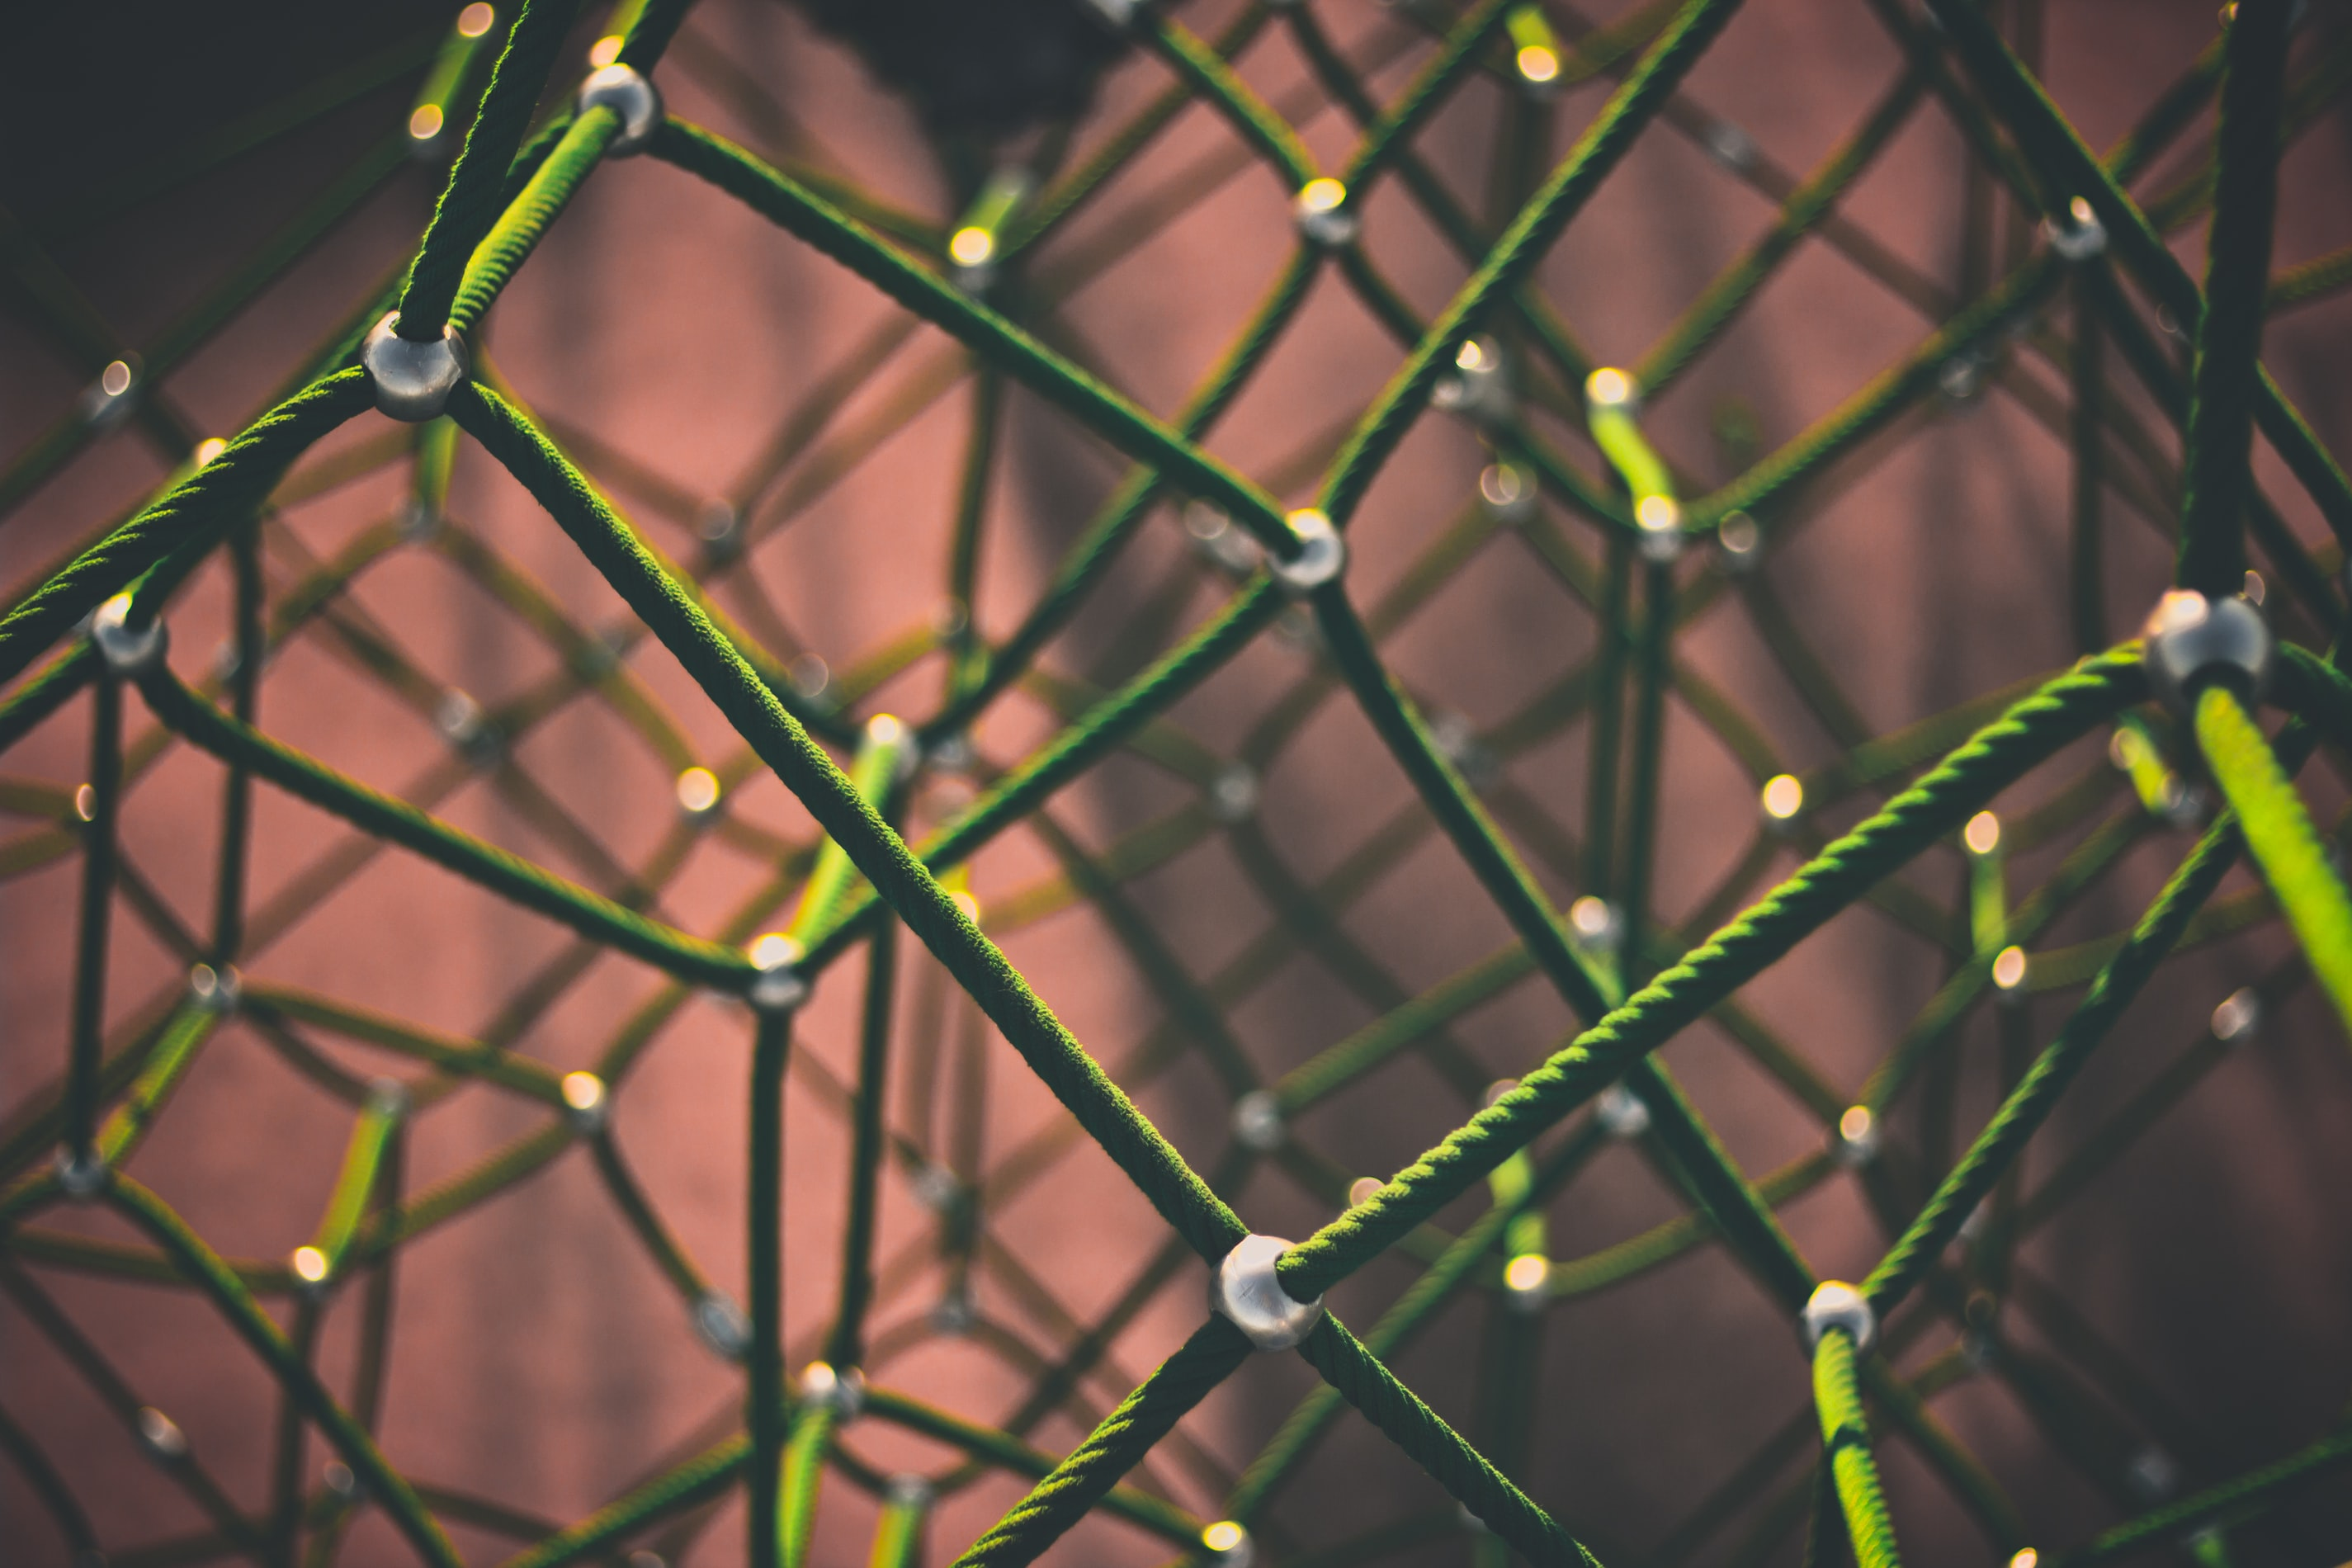 """Green rope meshwork"" by Clint Adair on Unsplash"